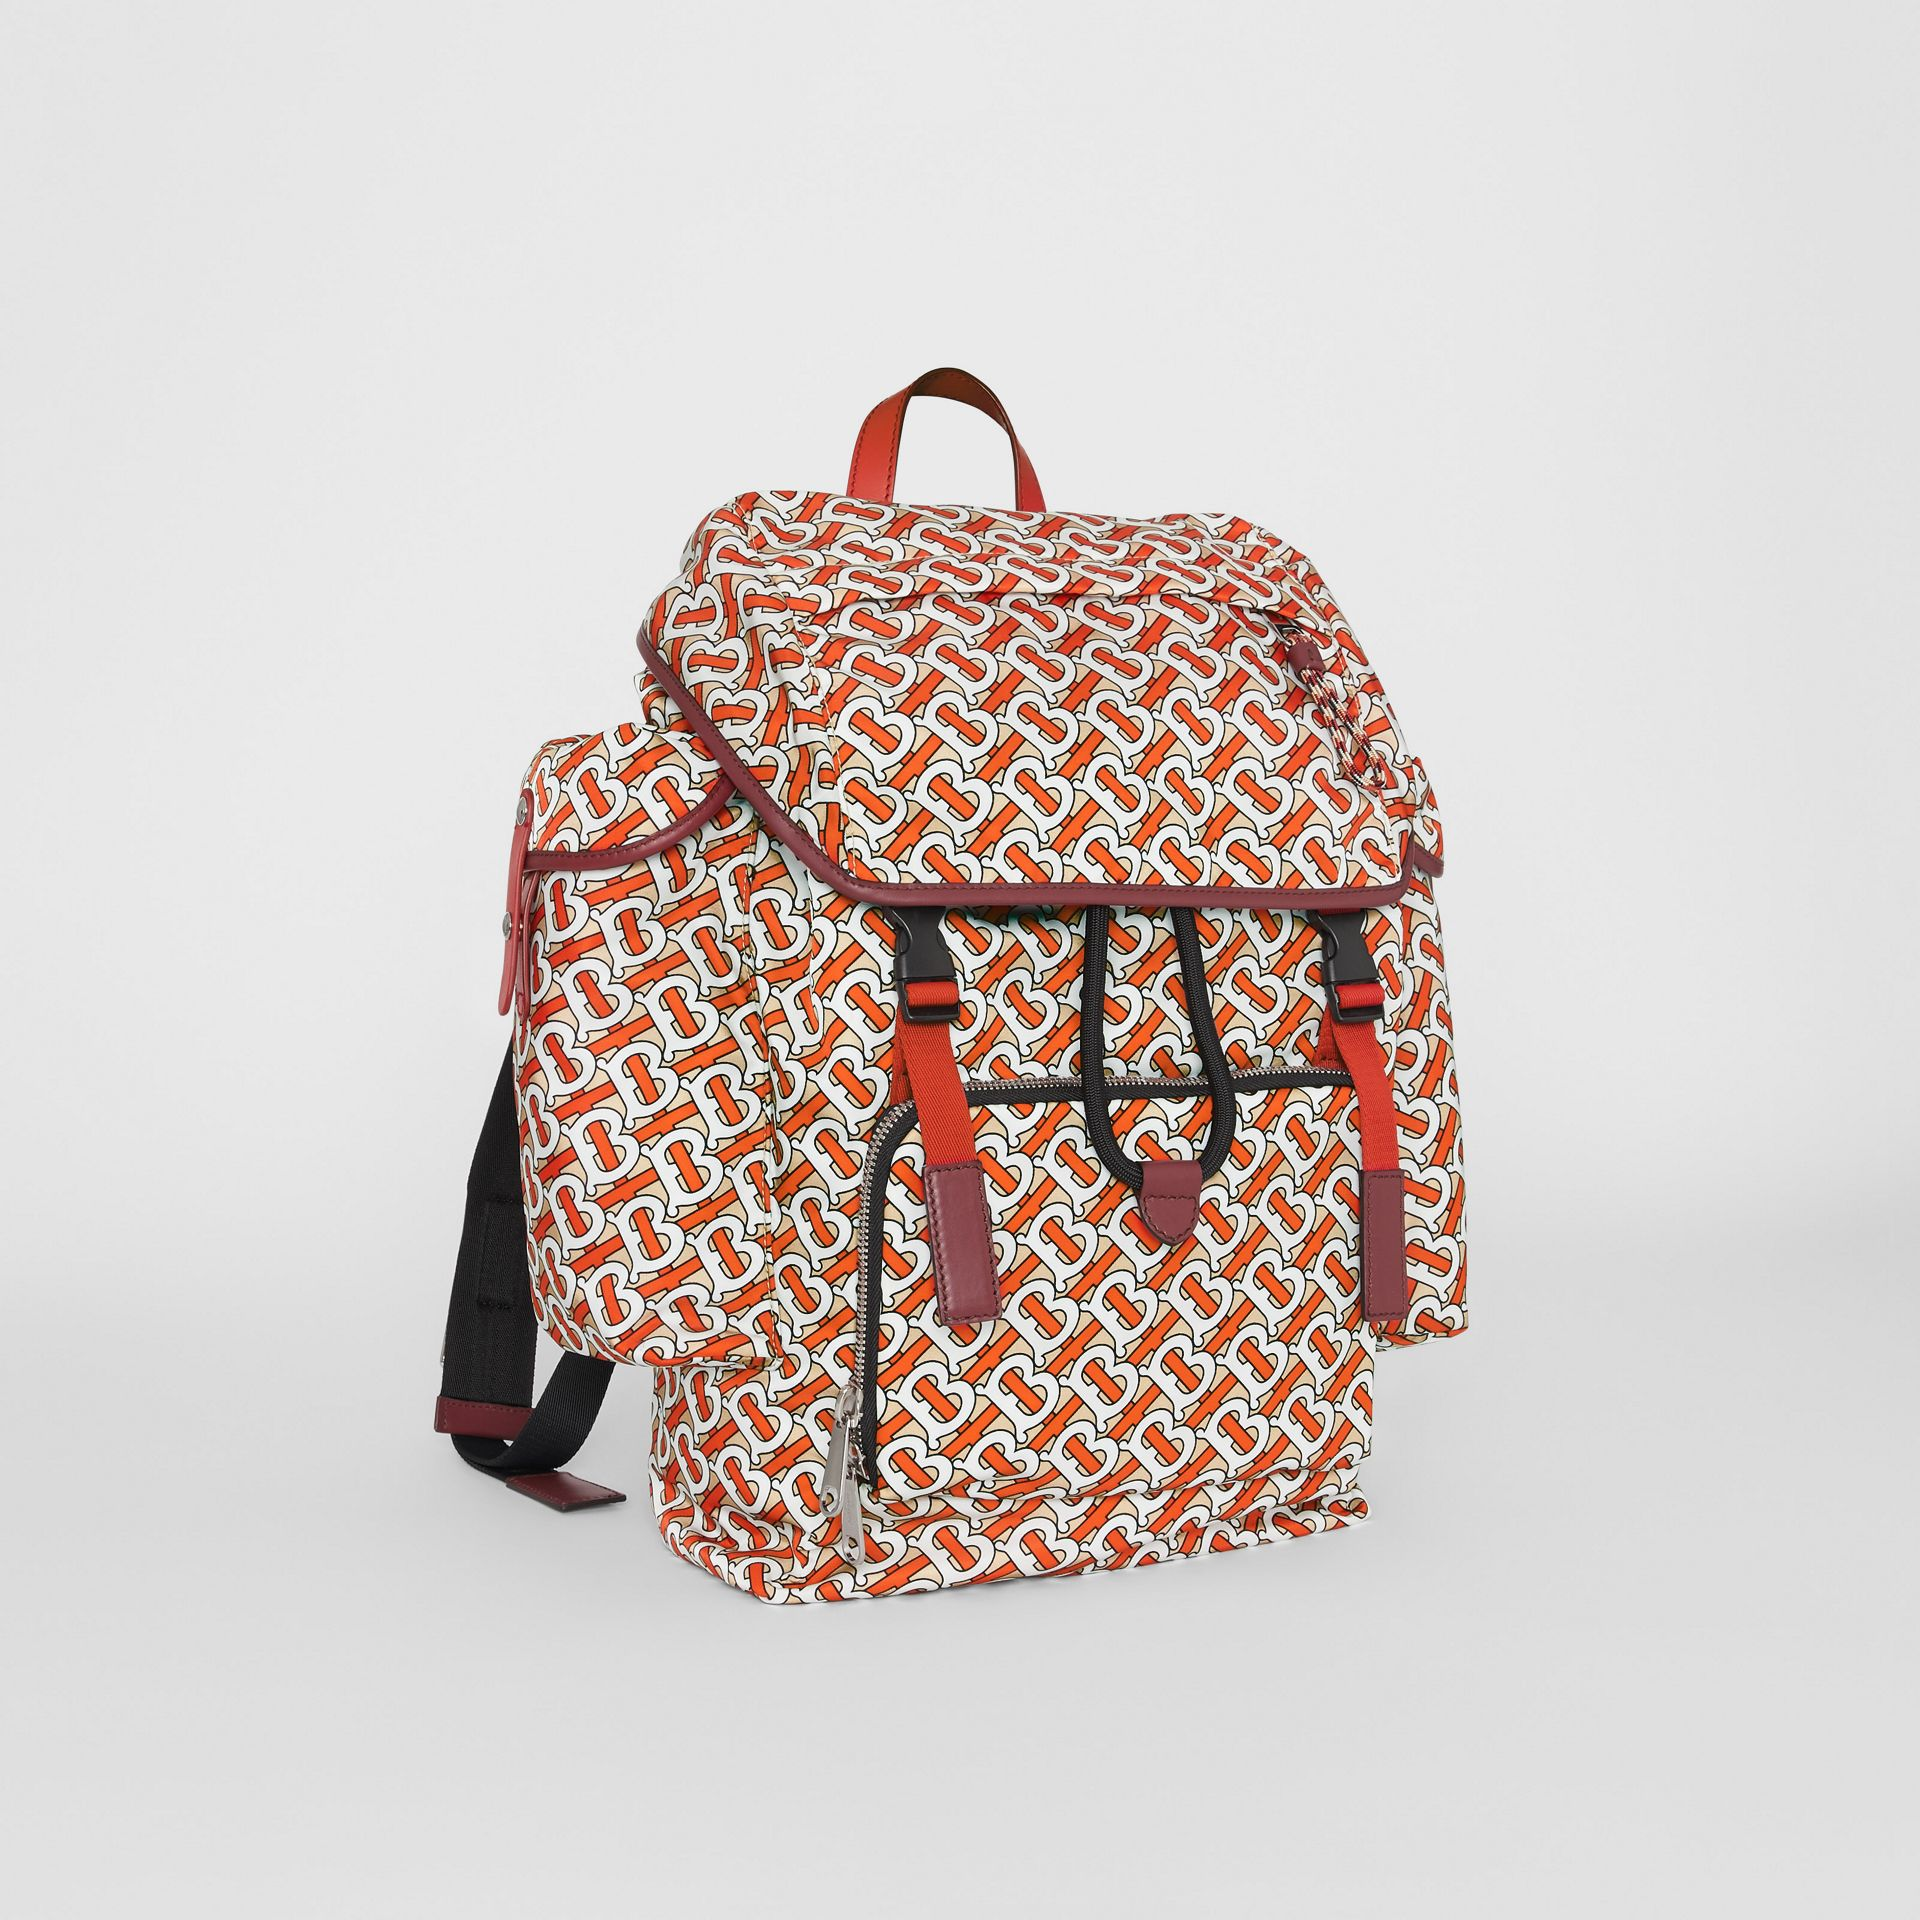 Medium Leather Trim Monogram Print Backpack in Vermilion - Men | Burberry Hong Kong - gallery image 6